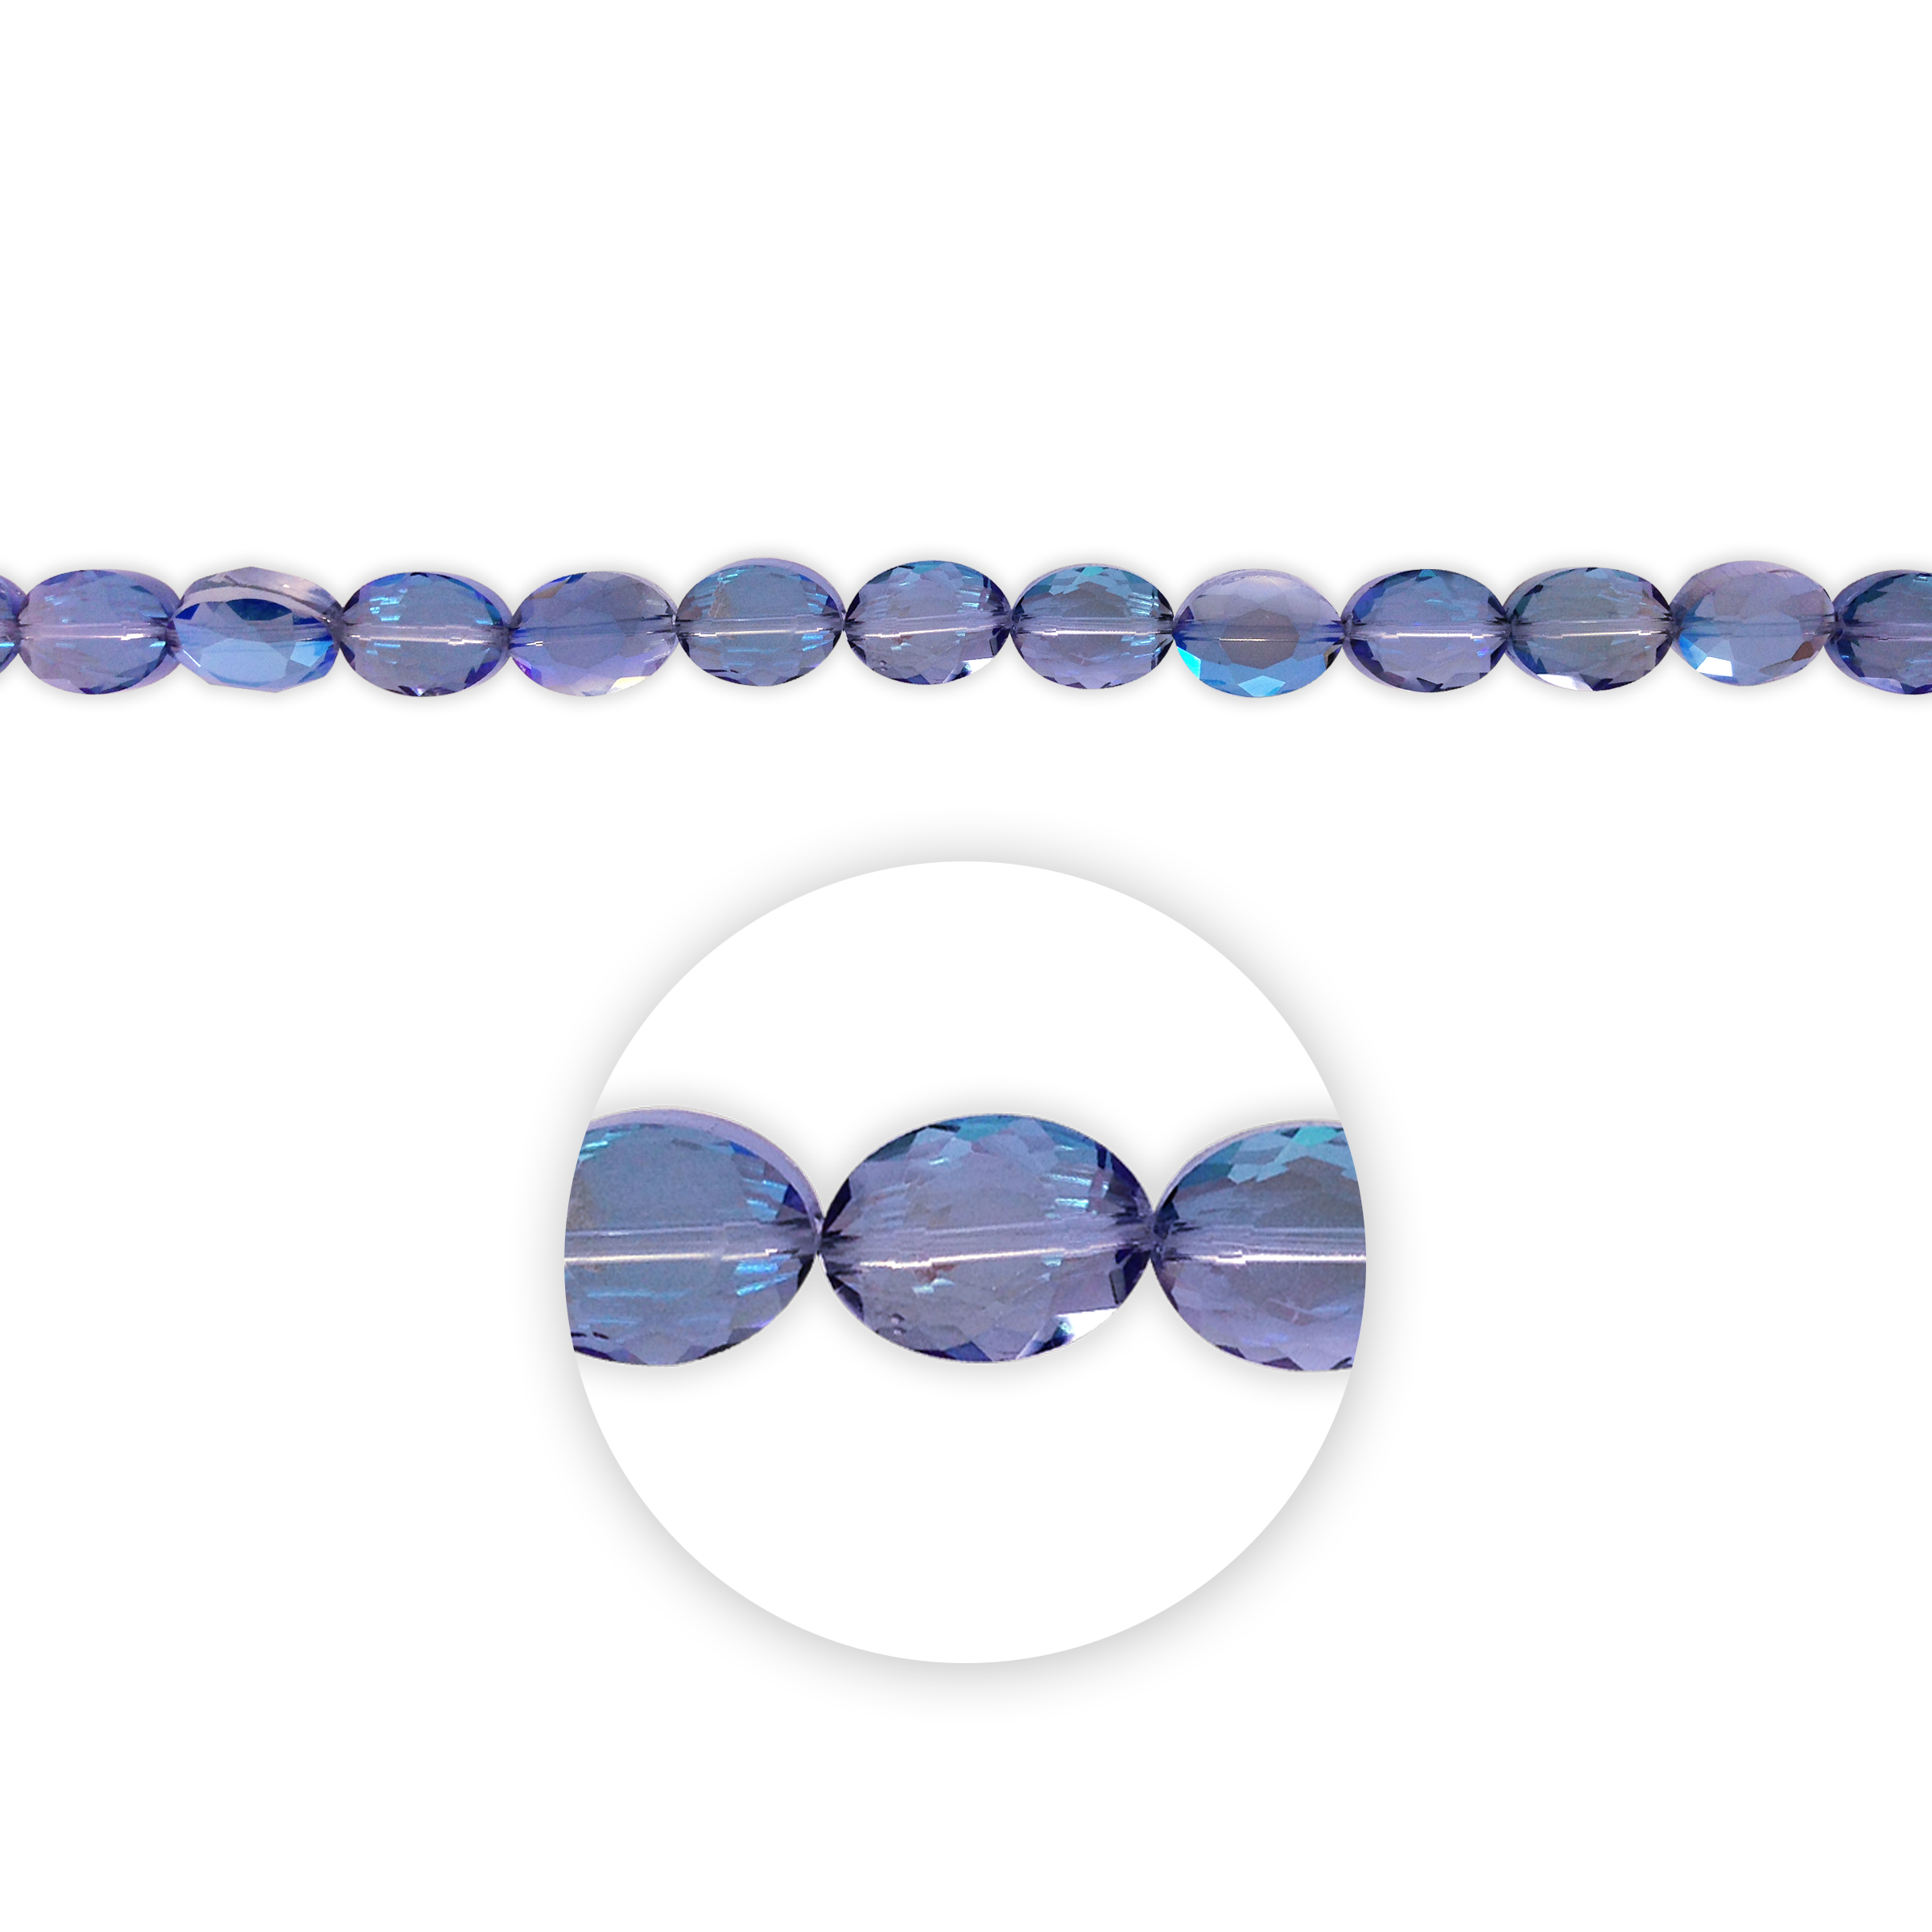 "Blue Moon Beads 7"" Crystal Strand, Flat Oval, Smoky Blue AB"